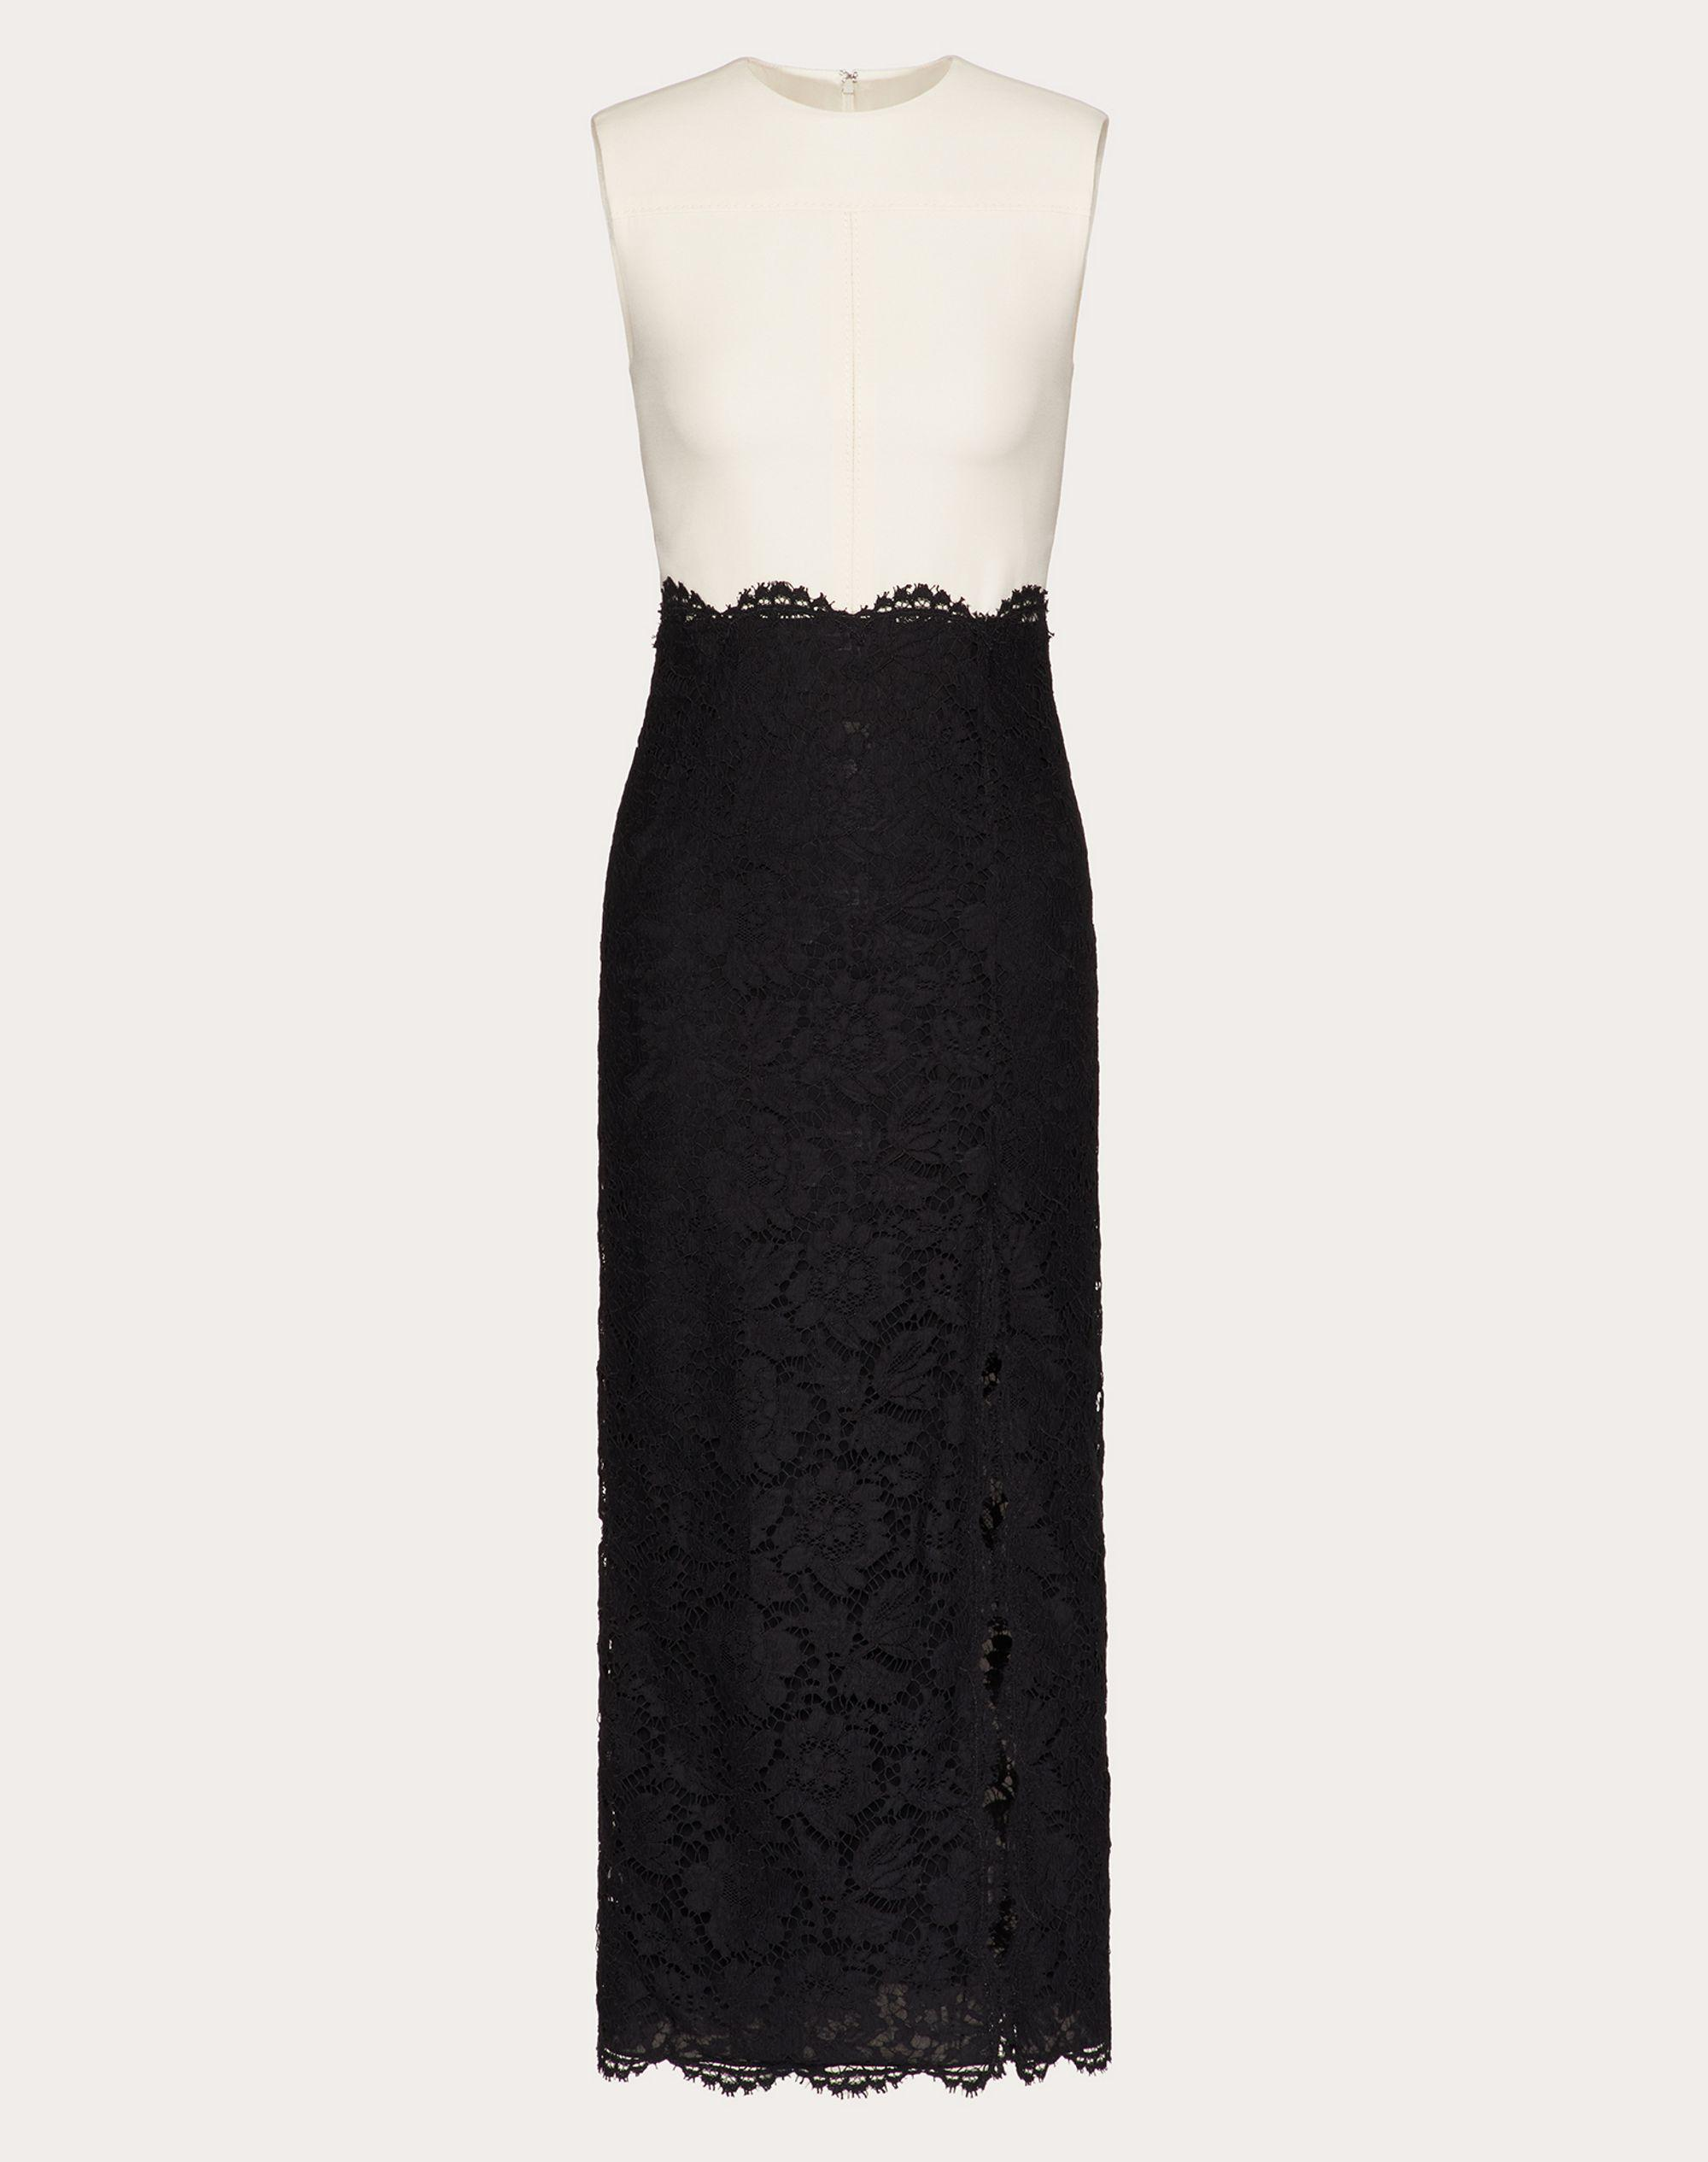 CREPE COUTURE AND HEAVY LACE DRESS 4